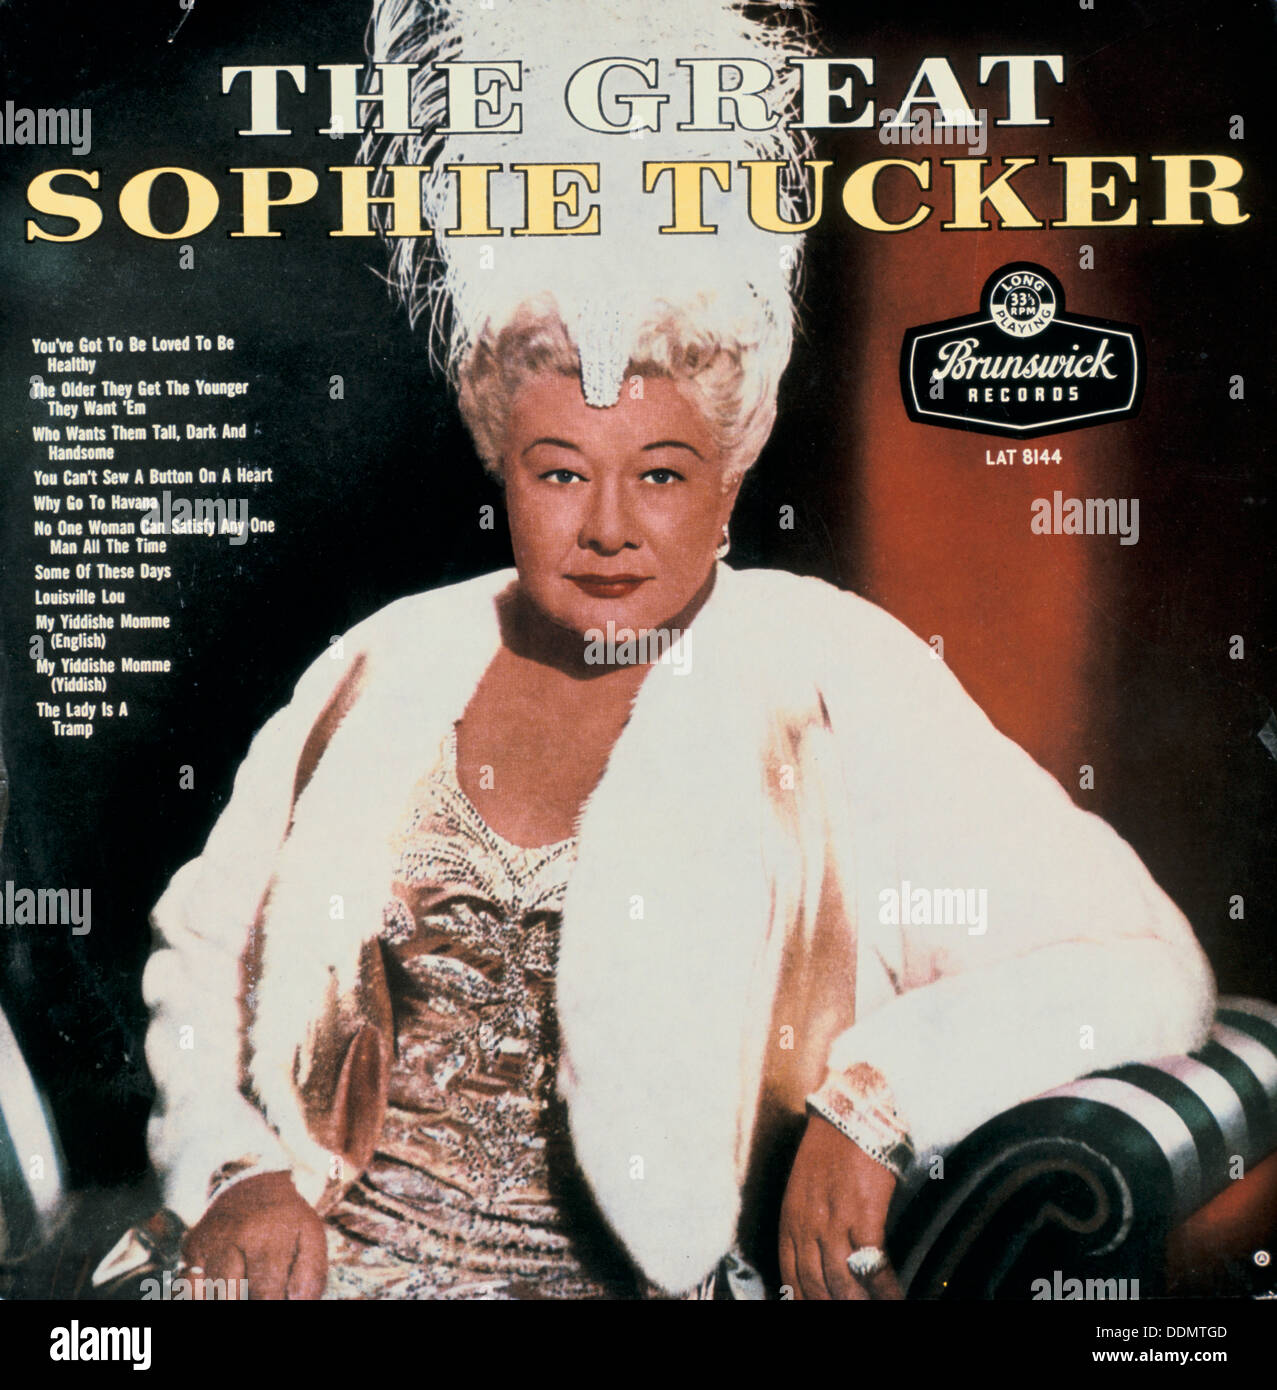 'The Great Sophie Tucker', (1884-1966), American Jewish entertainer. - Stock Image